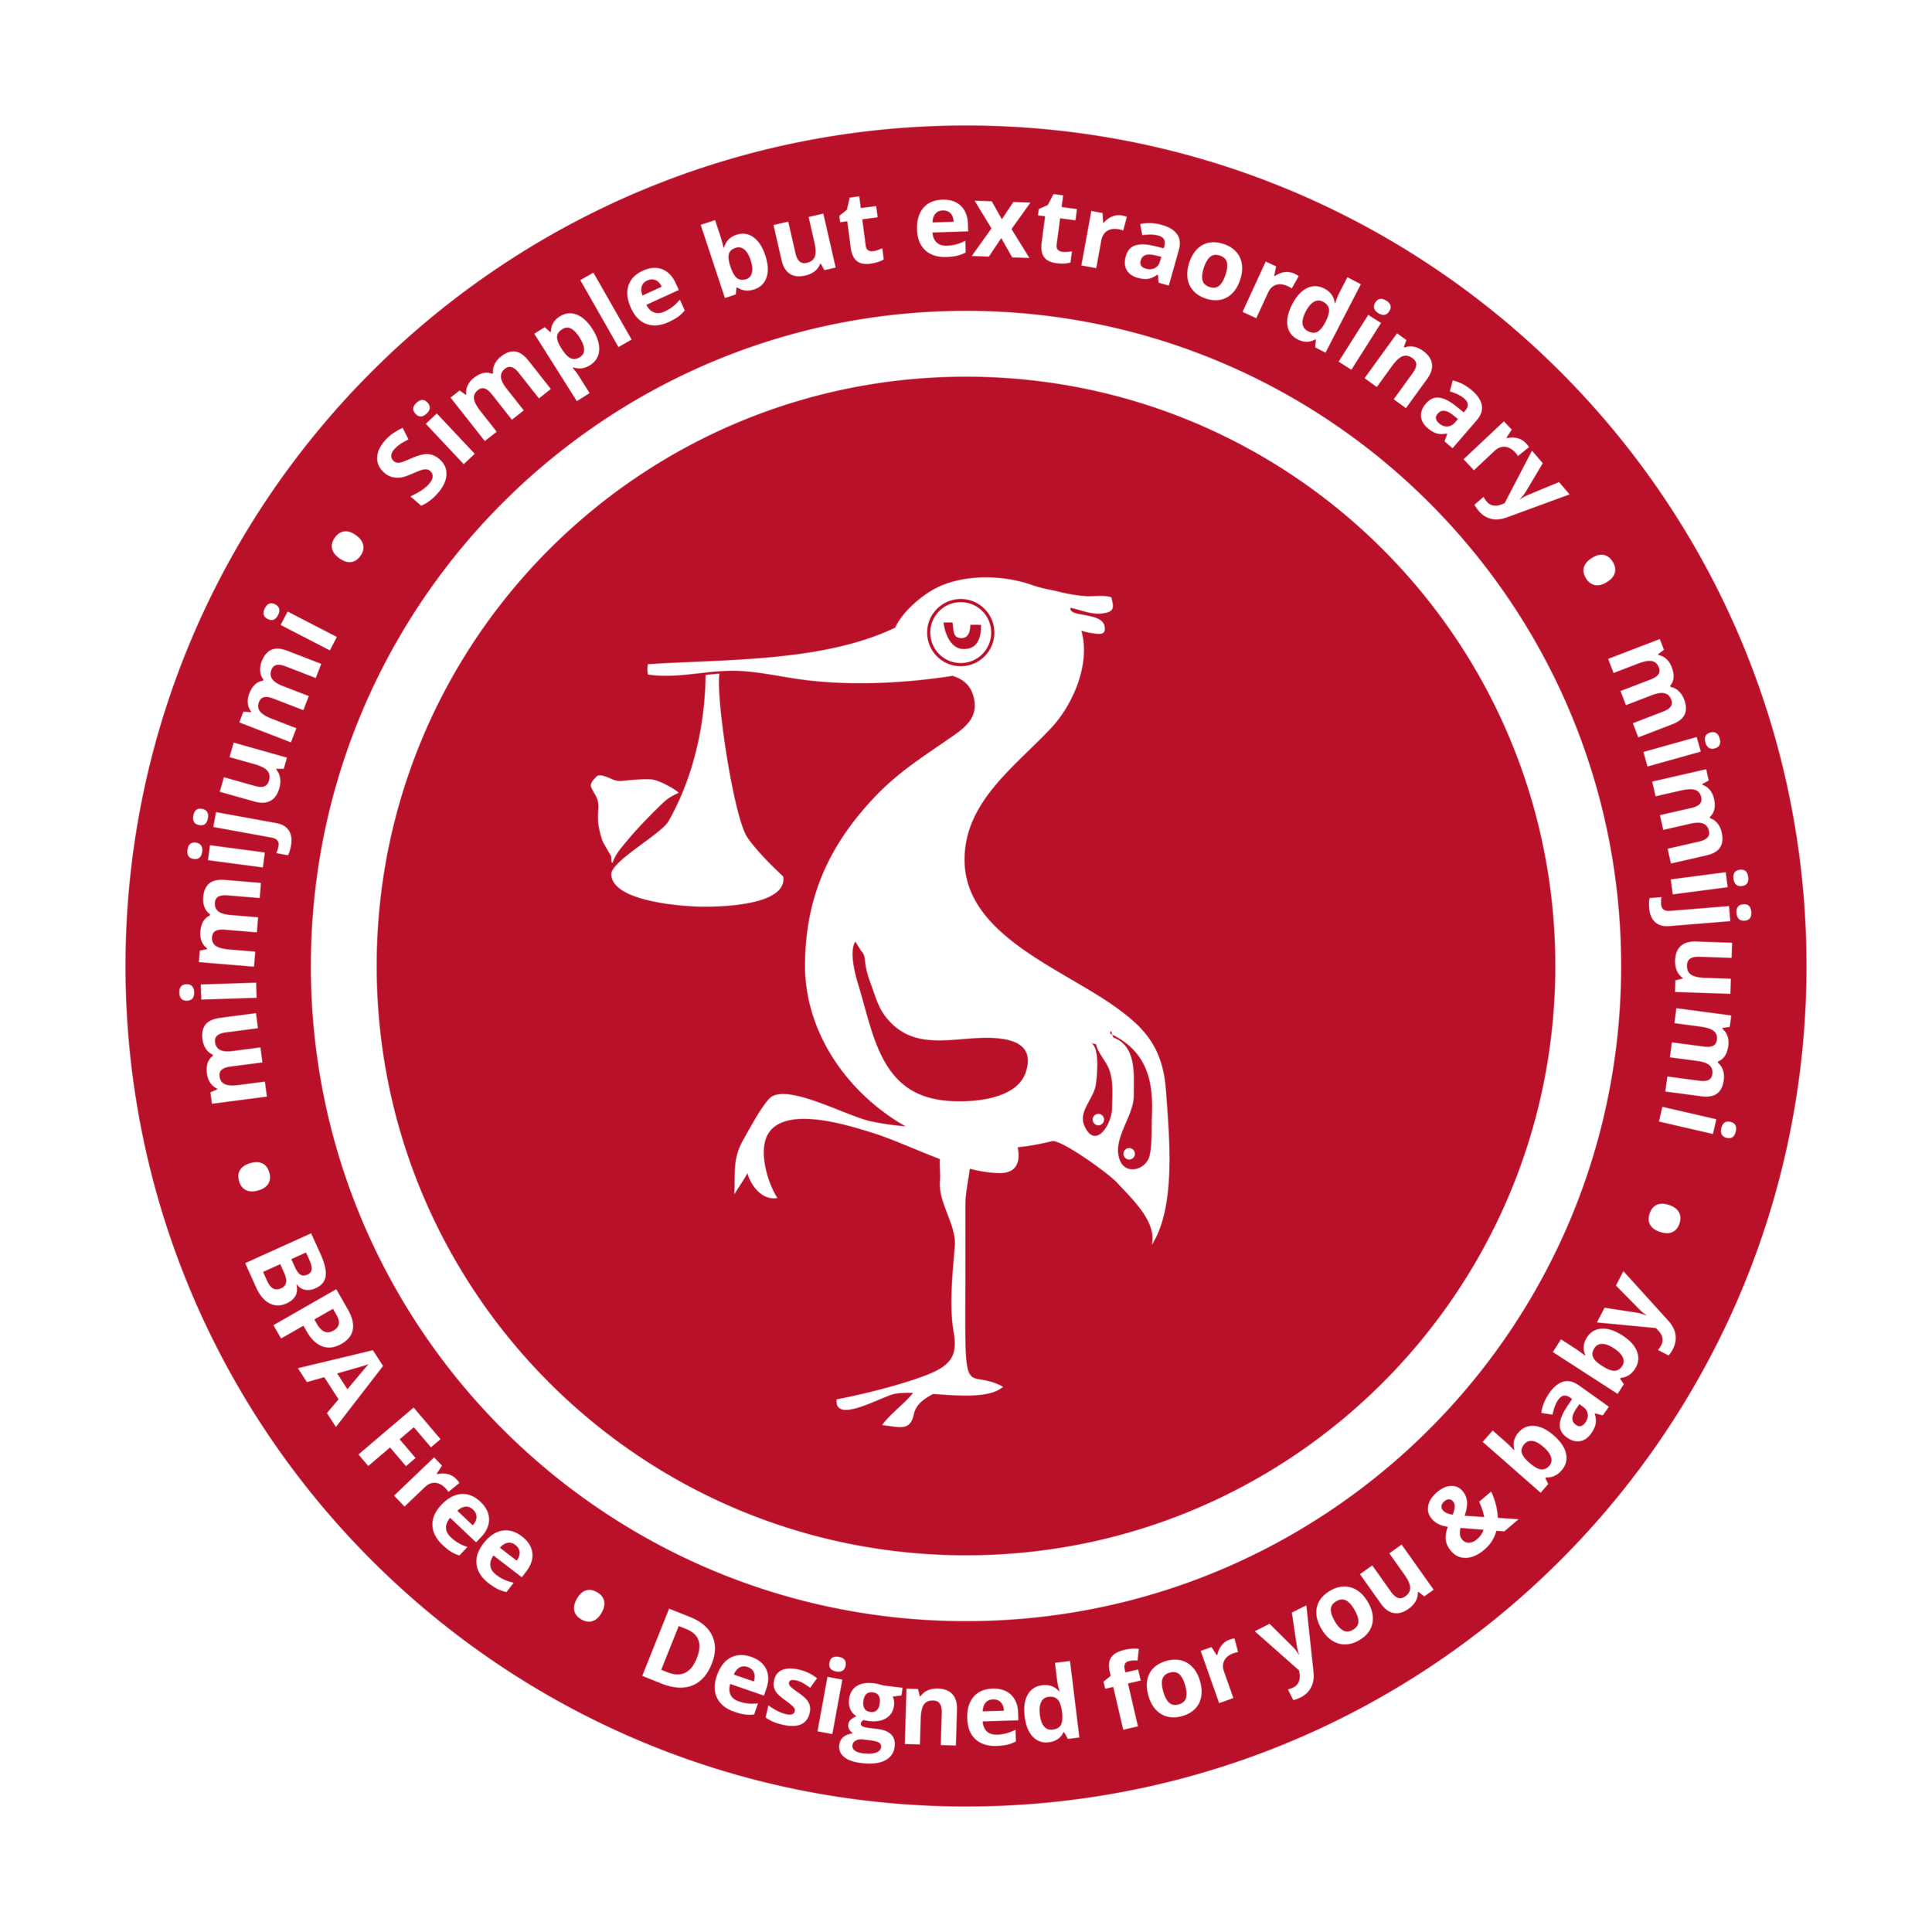 2012-10-16_Stamp_Simple_But_Red.png